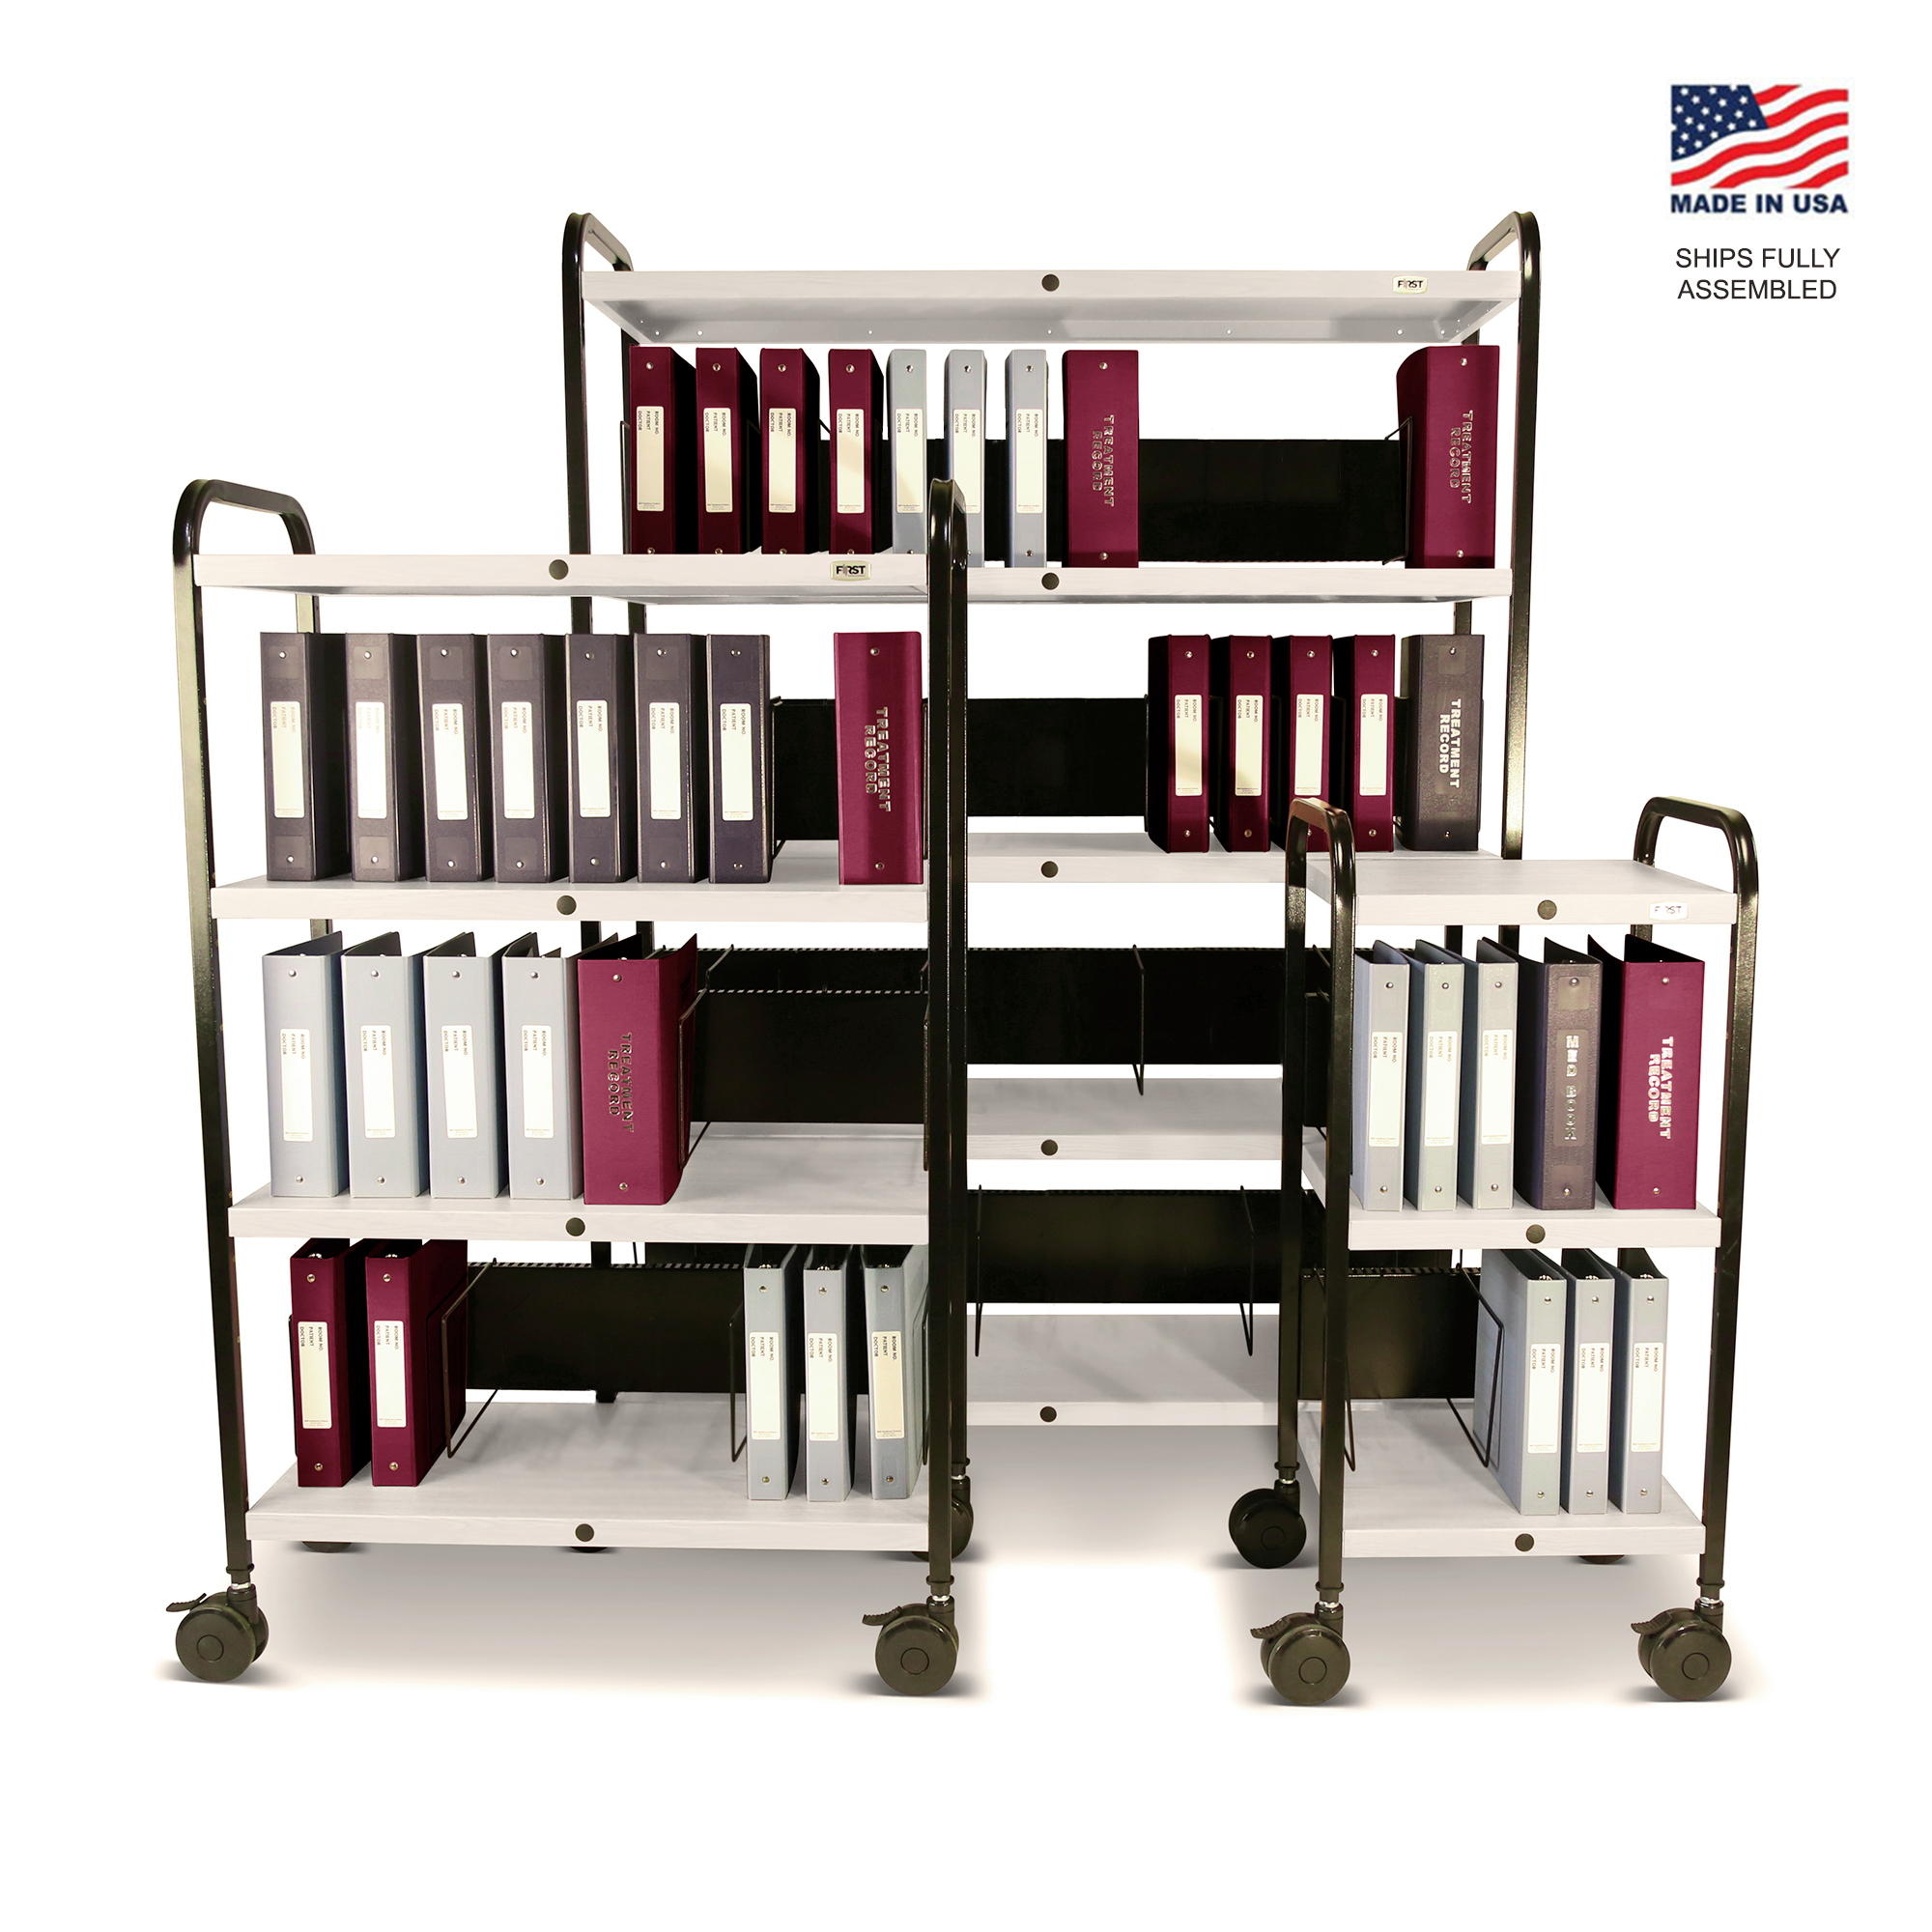 Mov-it Elite chart Rack: Series I Linen